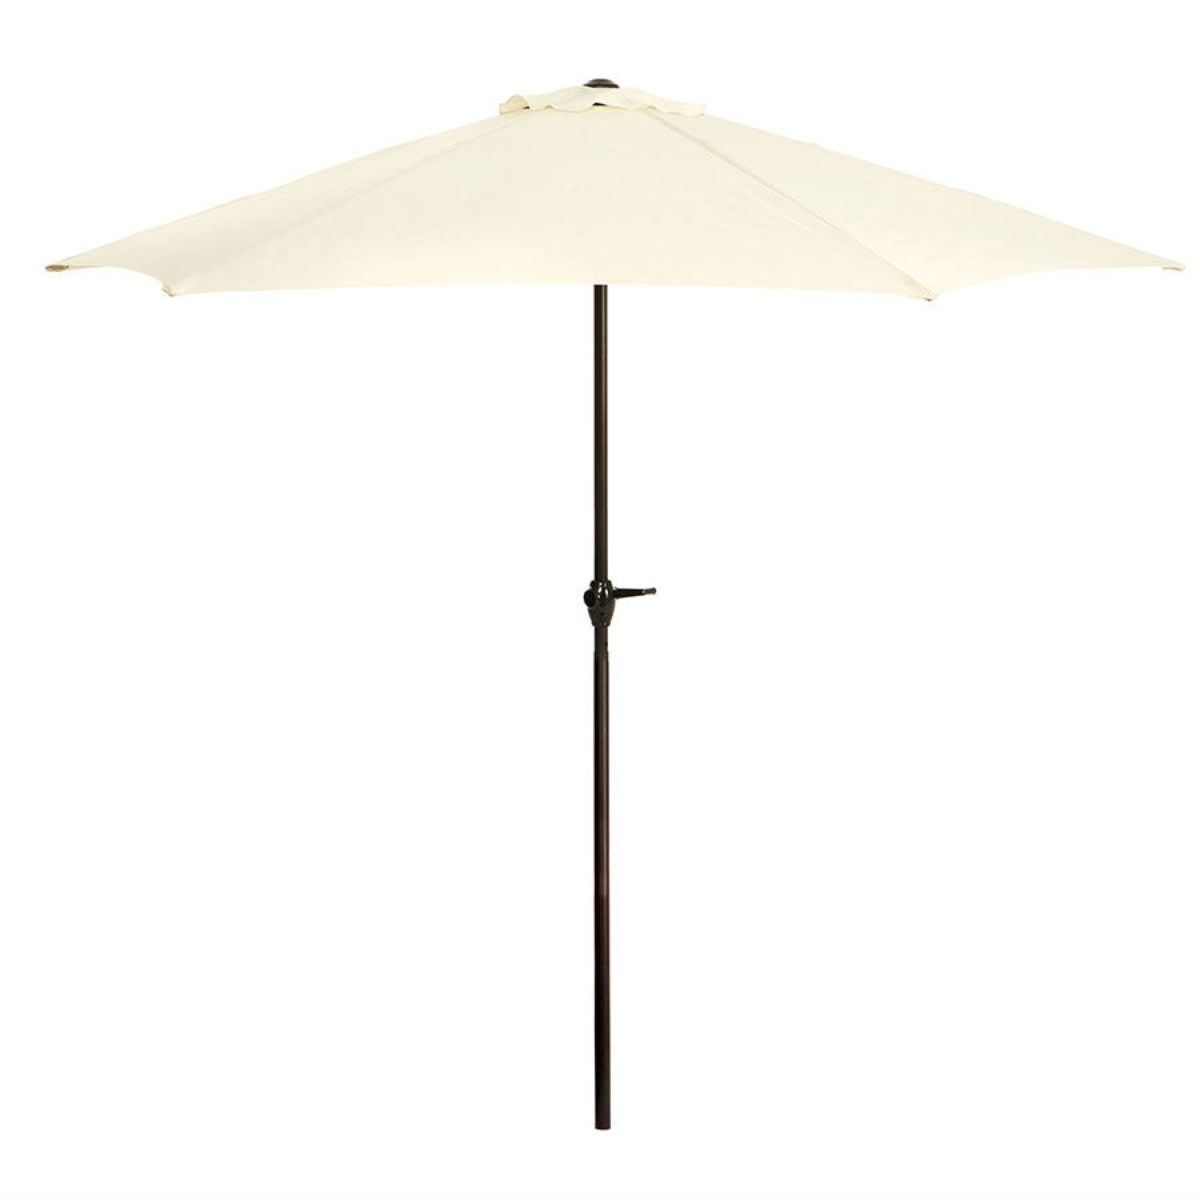 2.7m Large Garden Parasol with Metal Frame (base not included) - Cream